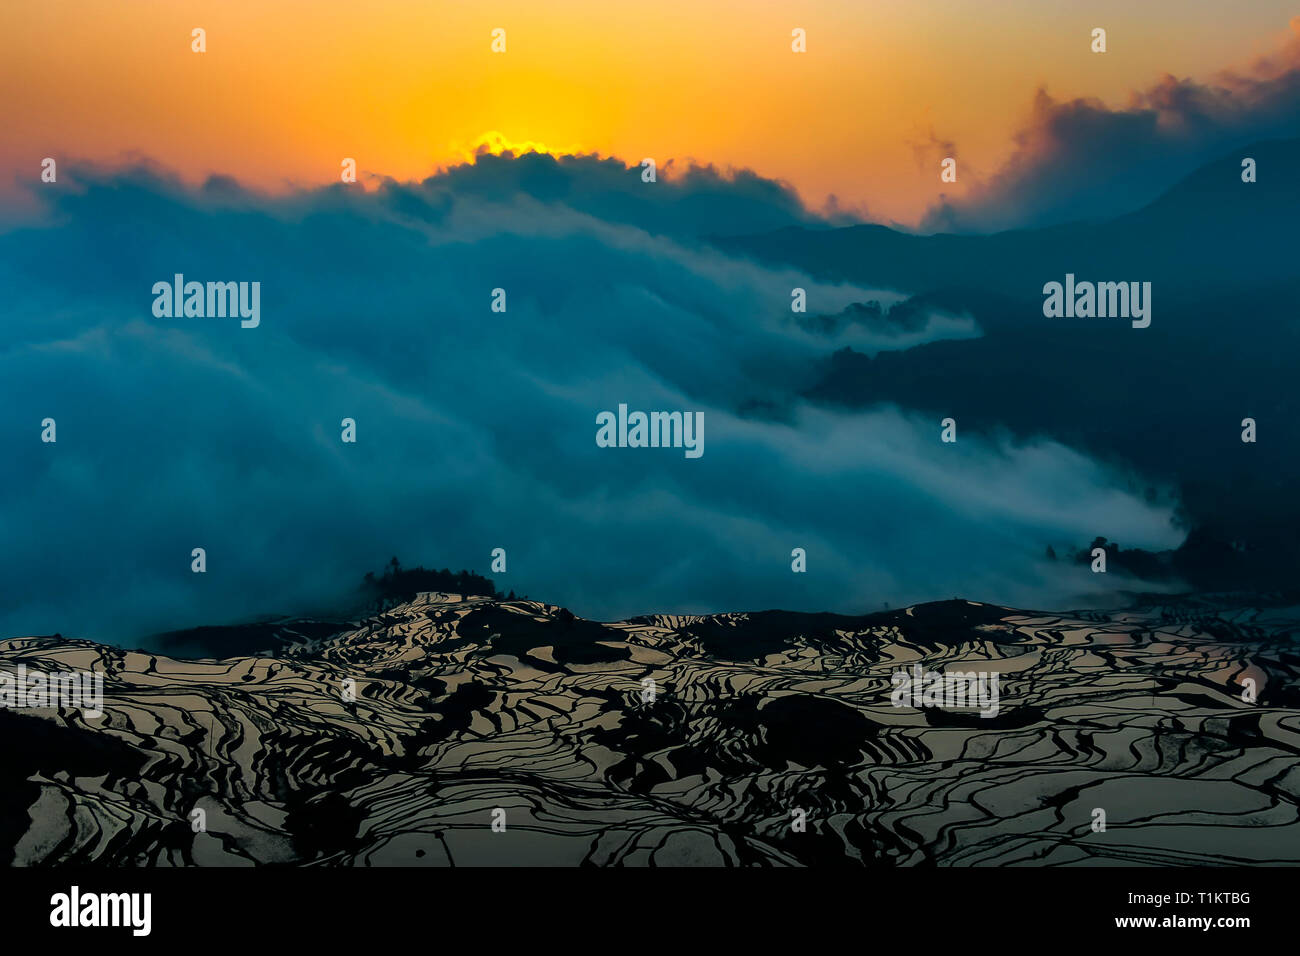 Sunrise at Yuanyang rice terraces and the sea of clouds, 1900 meters above sea level - Stock Image